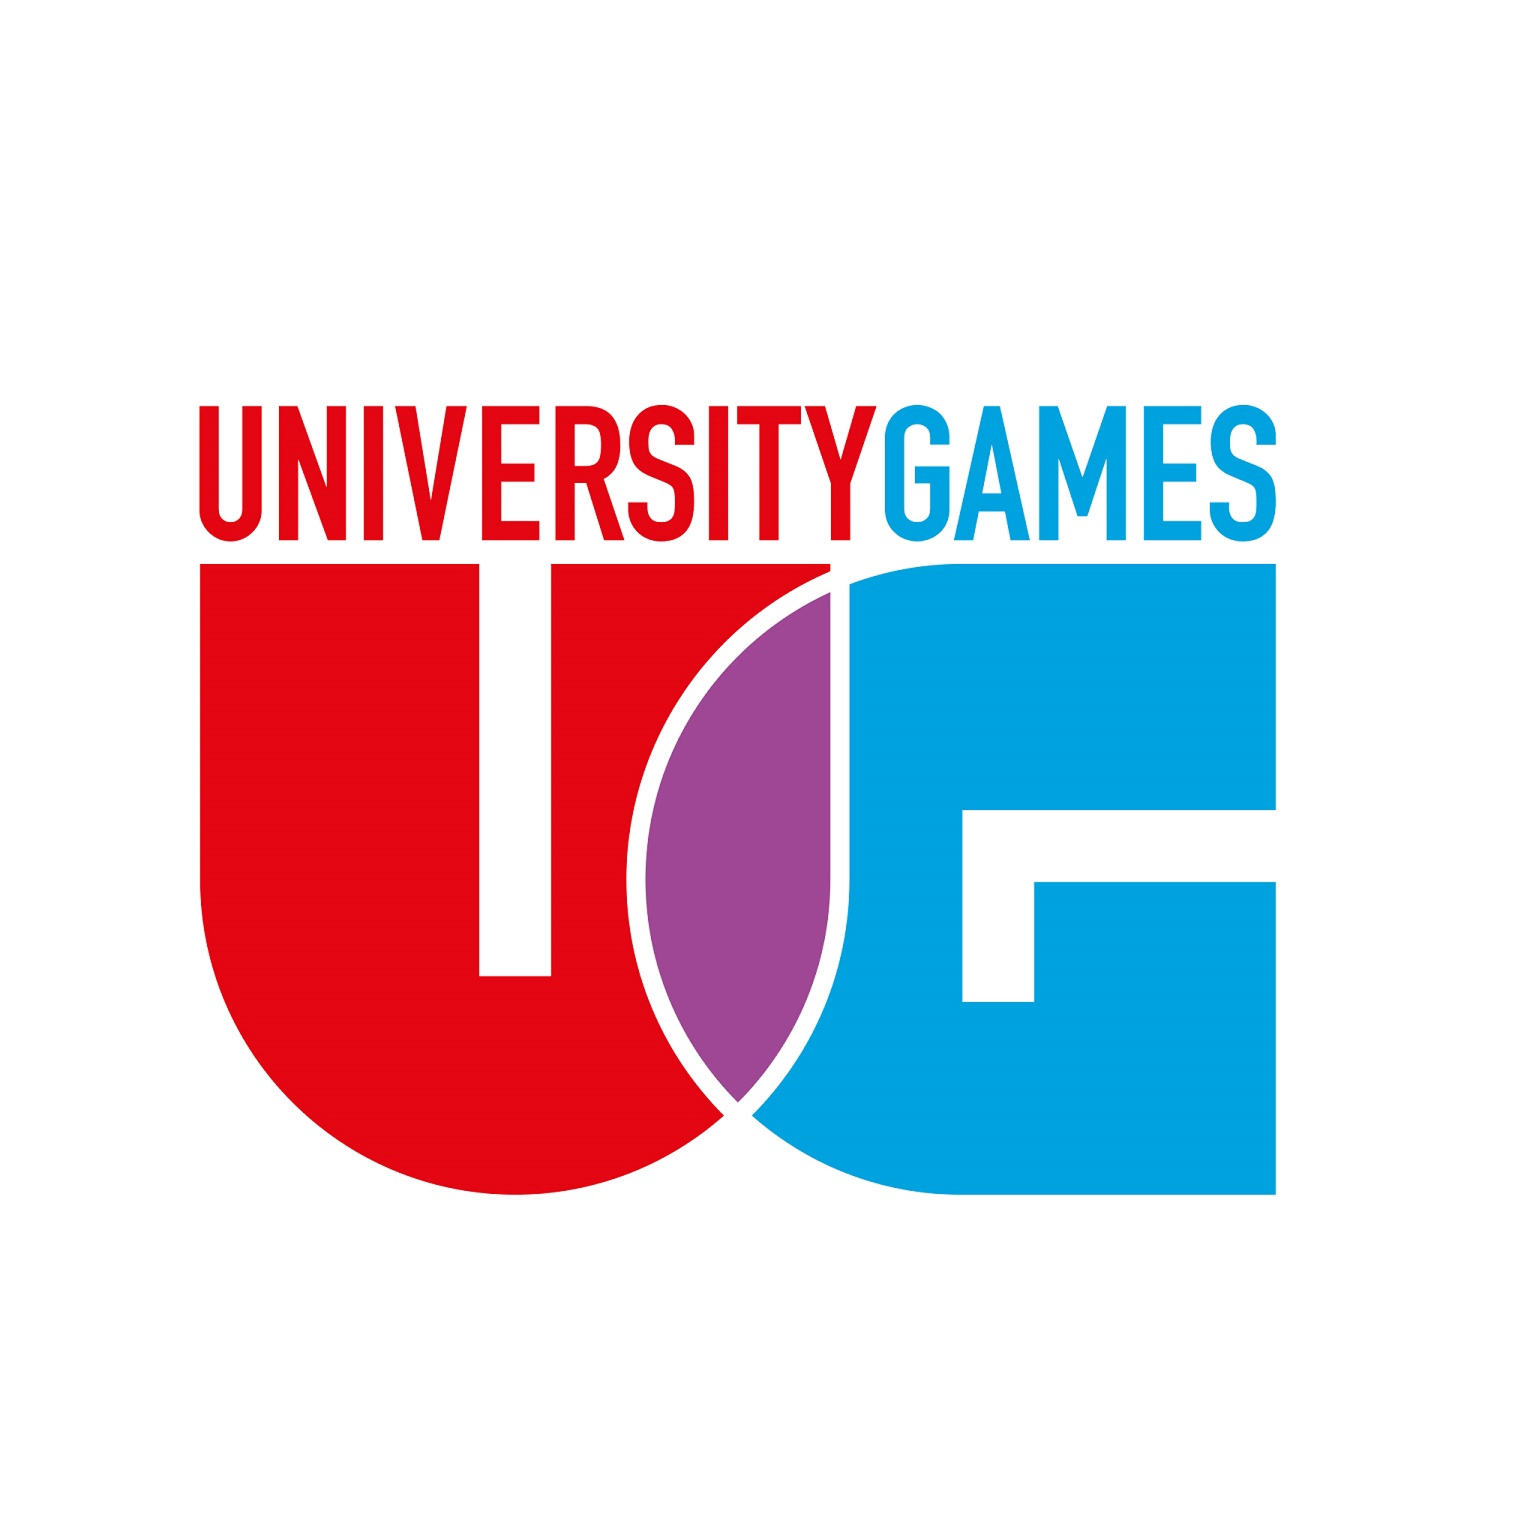 University Games & Paul Lamond Games